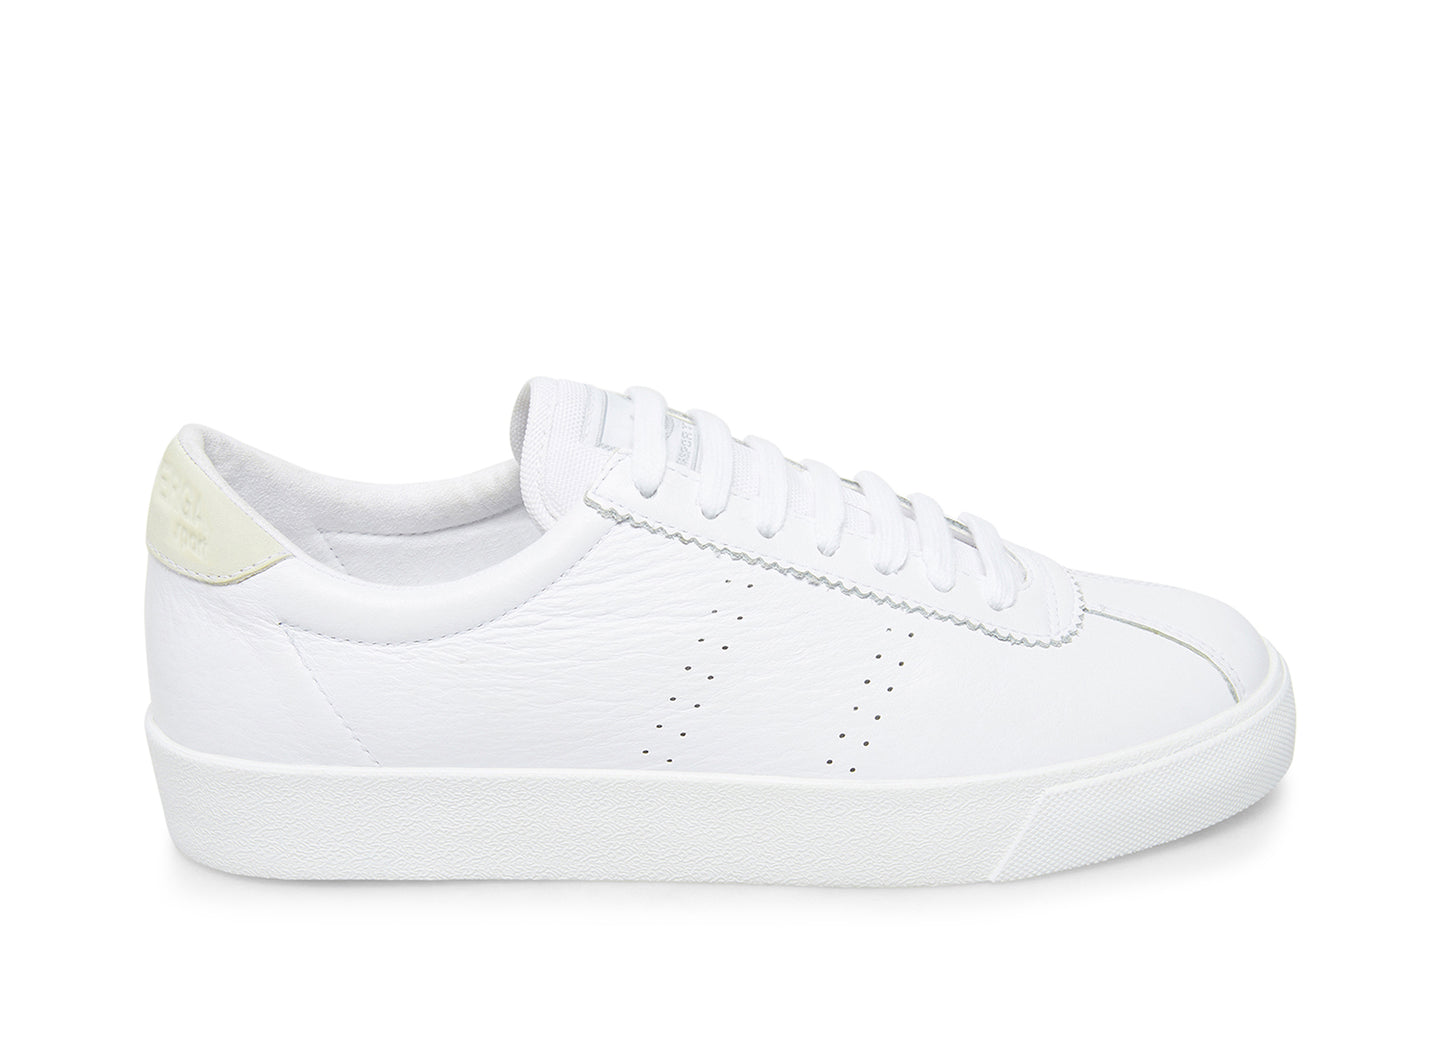 2843 COMFLEAU WHITE - Women's